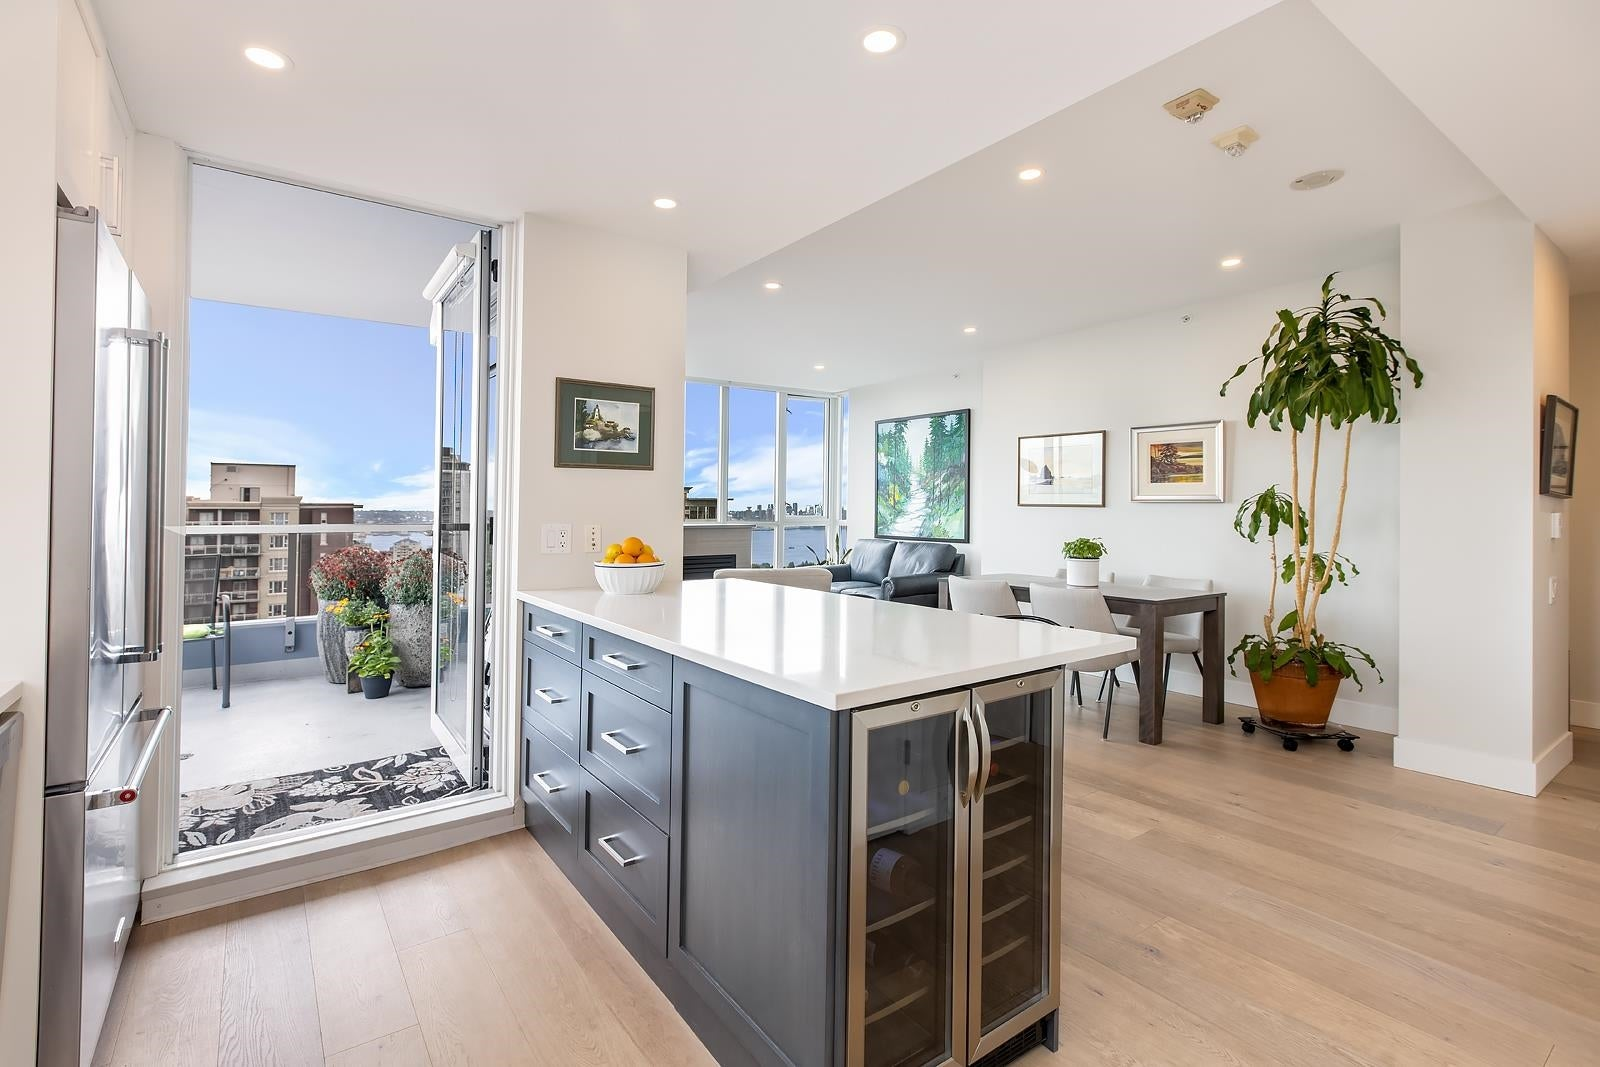 1601 121 W 16TH STREET - Central Lonsdale Apartment/Condo for sale, 2 Bedrooms (R2617103) - #14